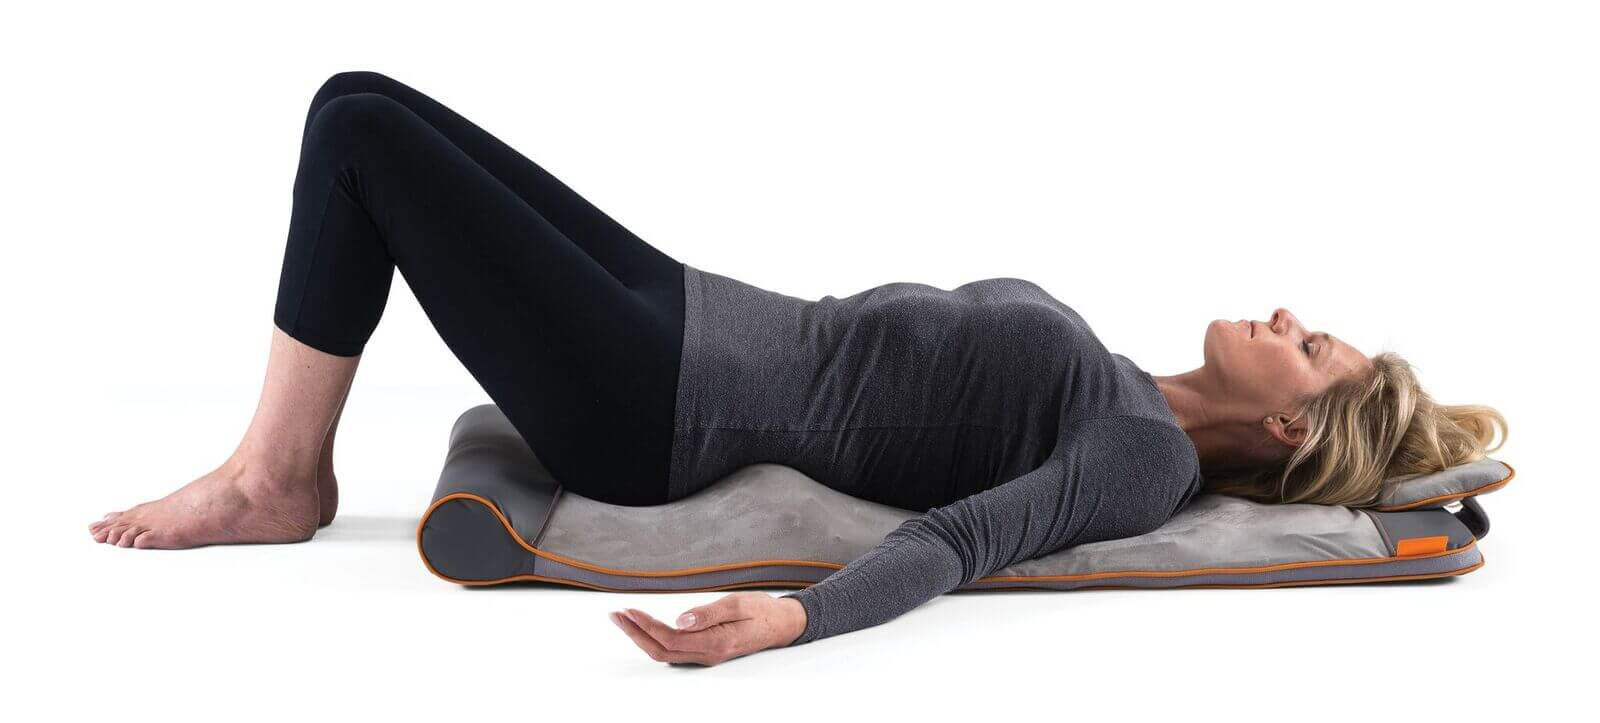 HoMedics Stretch Mat